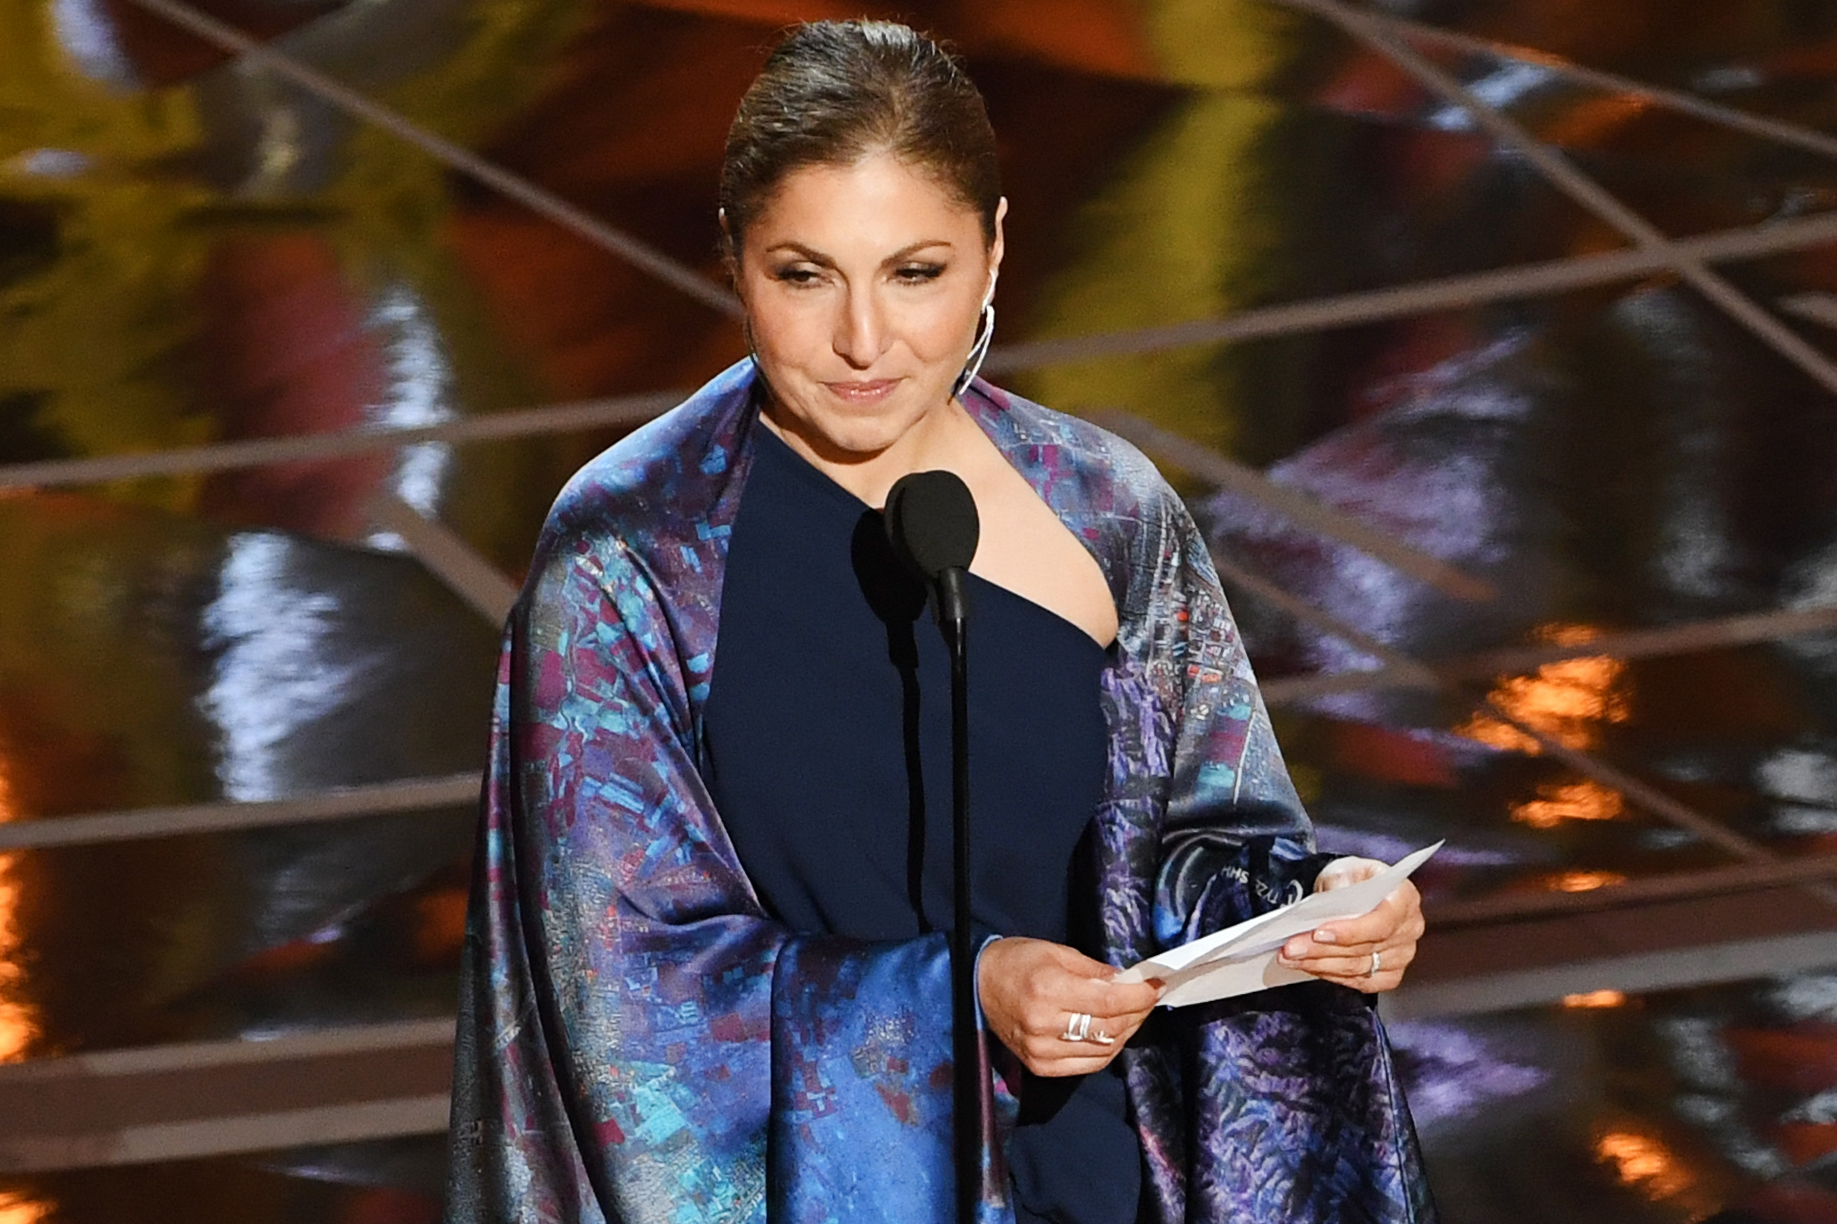 Engineer/astronaut Anousheh Ansari accepts Best Foreign Language Film for The Salesman on behalf of director Asghar Farhadi during the 89th Annual Academy Awards, on Feb. 26, 2017 in Hollywood, Calif.